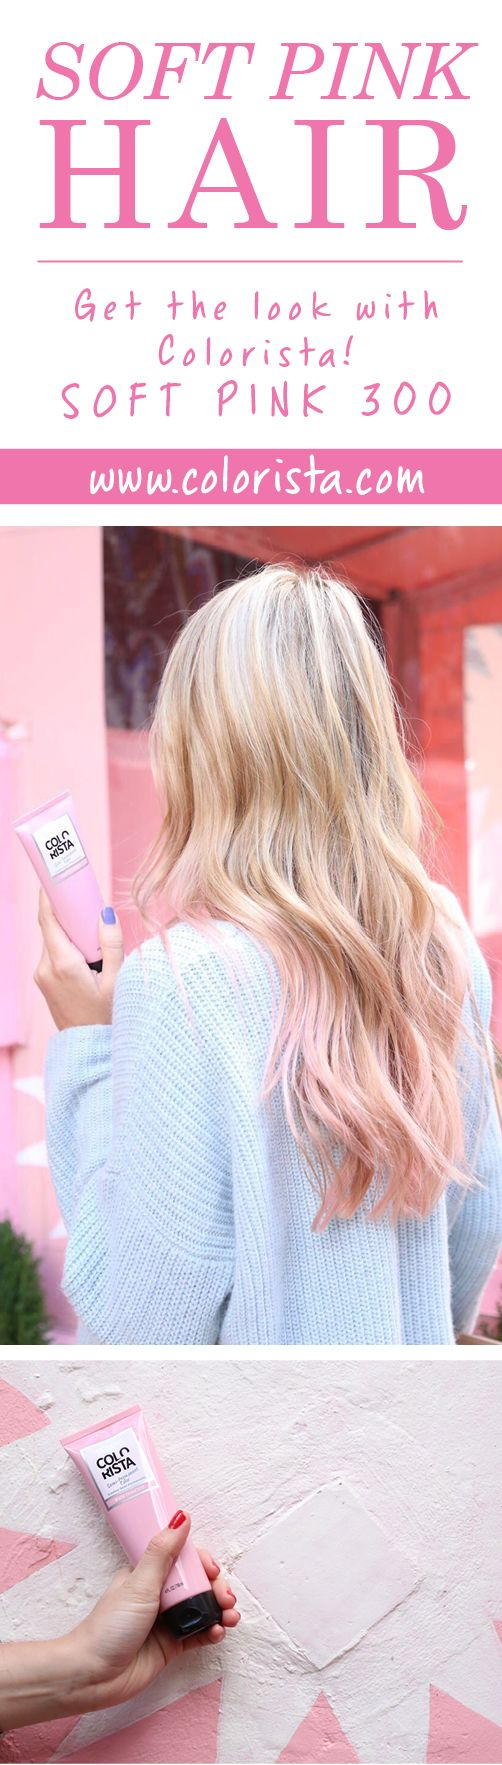 L'Oréal Paris Colorista Semi Permanent Hair Color allows you to play with COLOR YOUR WAY. Go all out or flirt with color by customizing your look and transforming your style. Try it in Soft Pink 300.